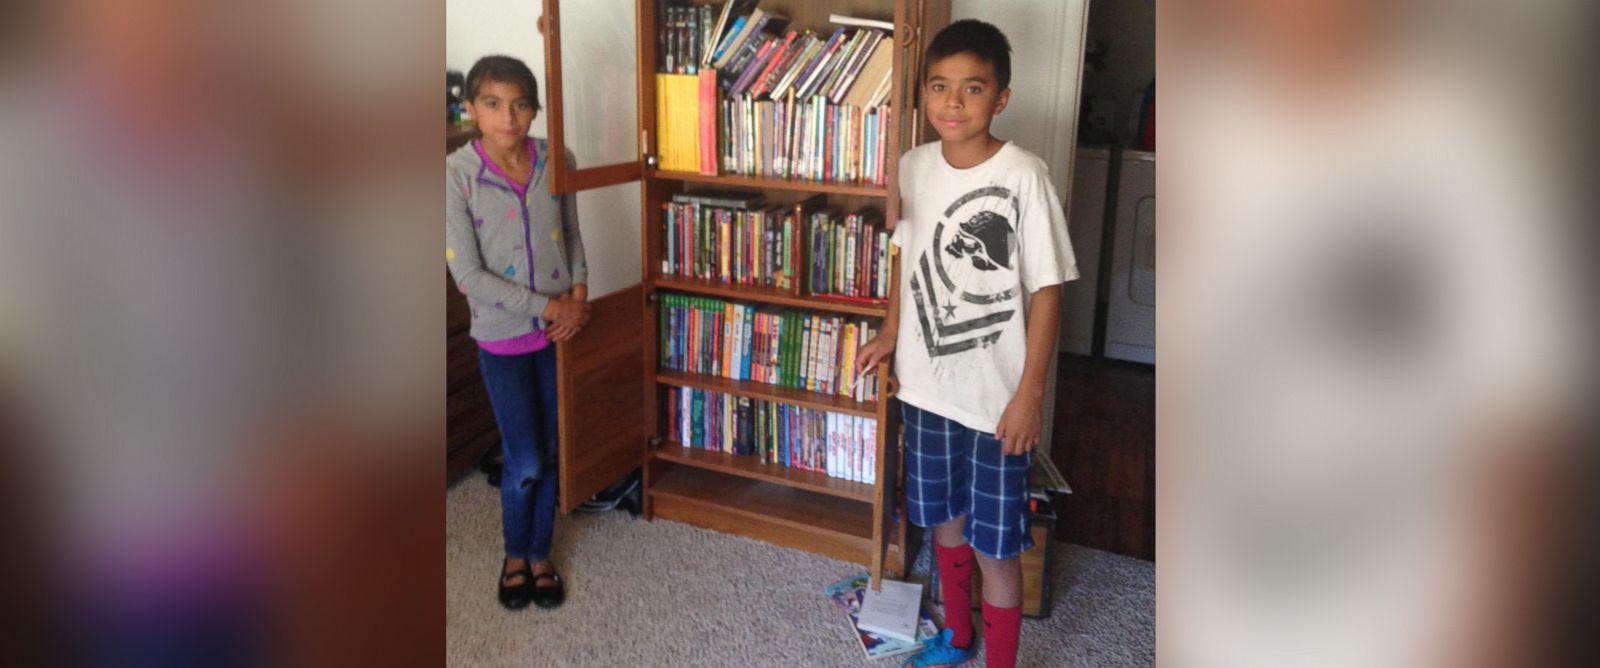 PHOTO: Mathew Flores, 12, has received hundreds of book donations after a local mailmans plea to help get him books went viral on social media.